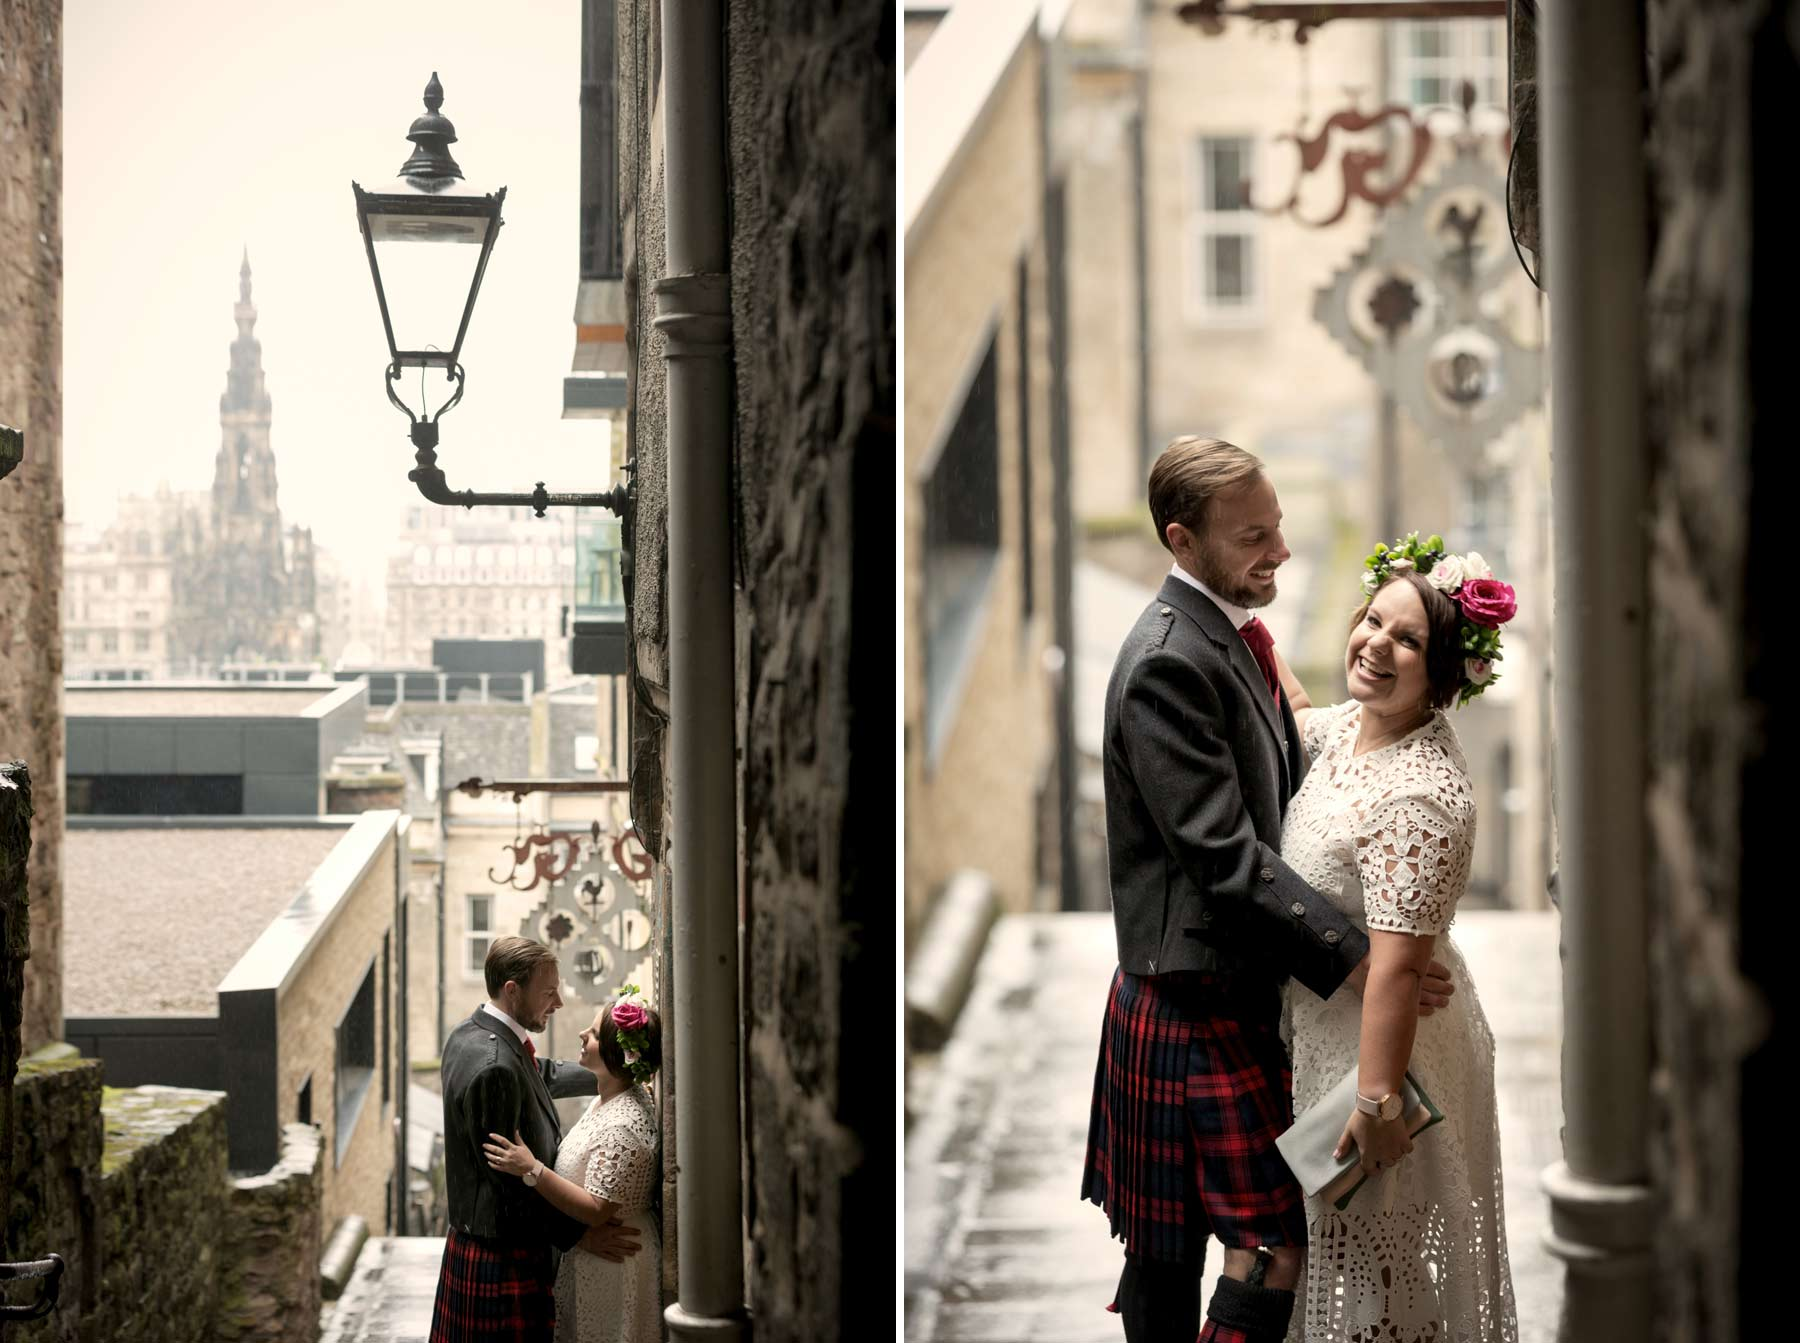 Bride, groom, wedding, portraits, photography, Advocate Close, Edinburgh, Old Town, Scotland